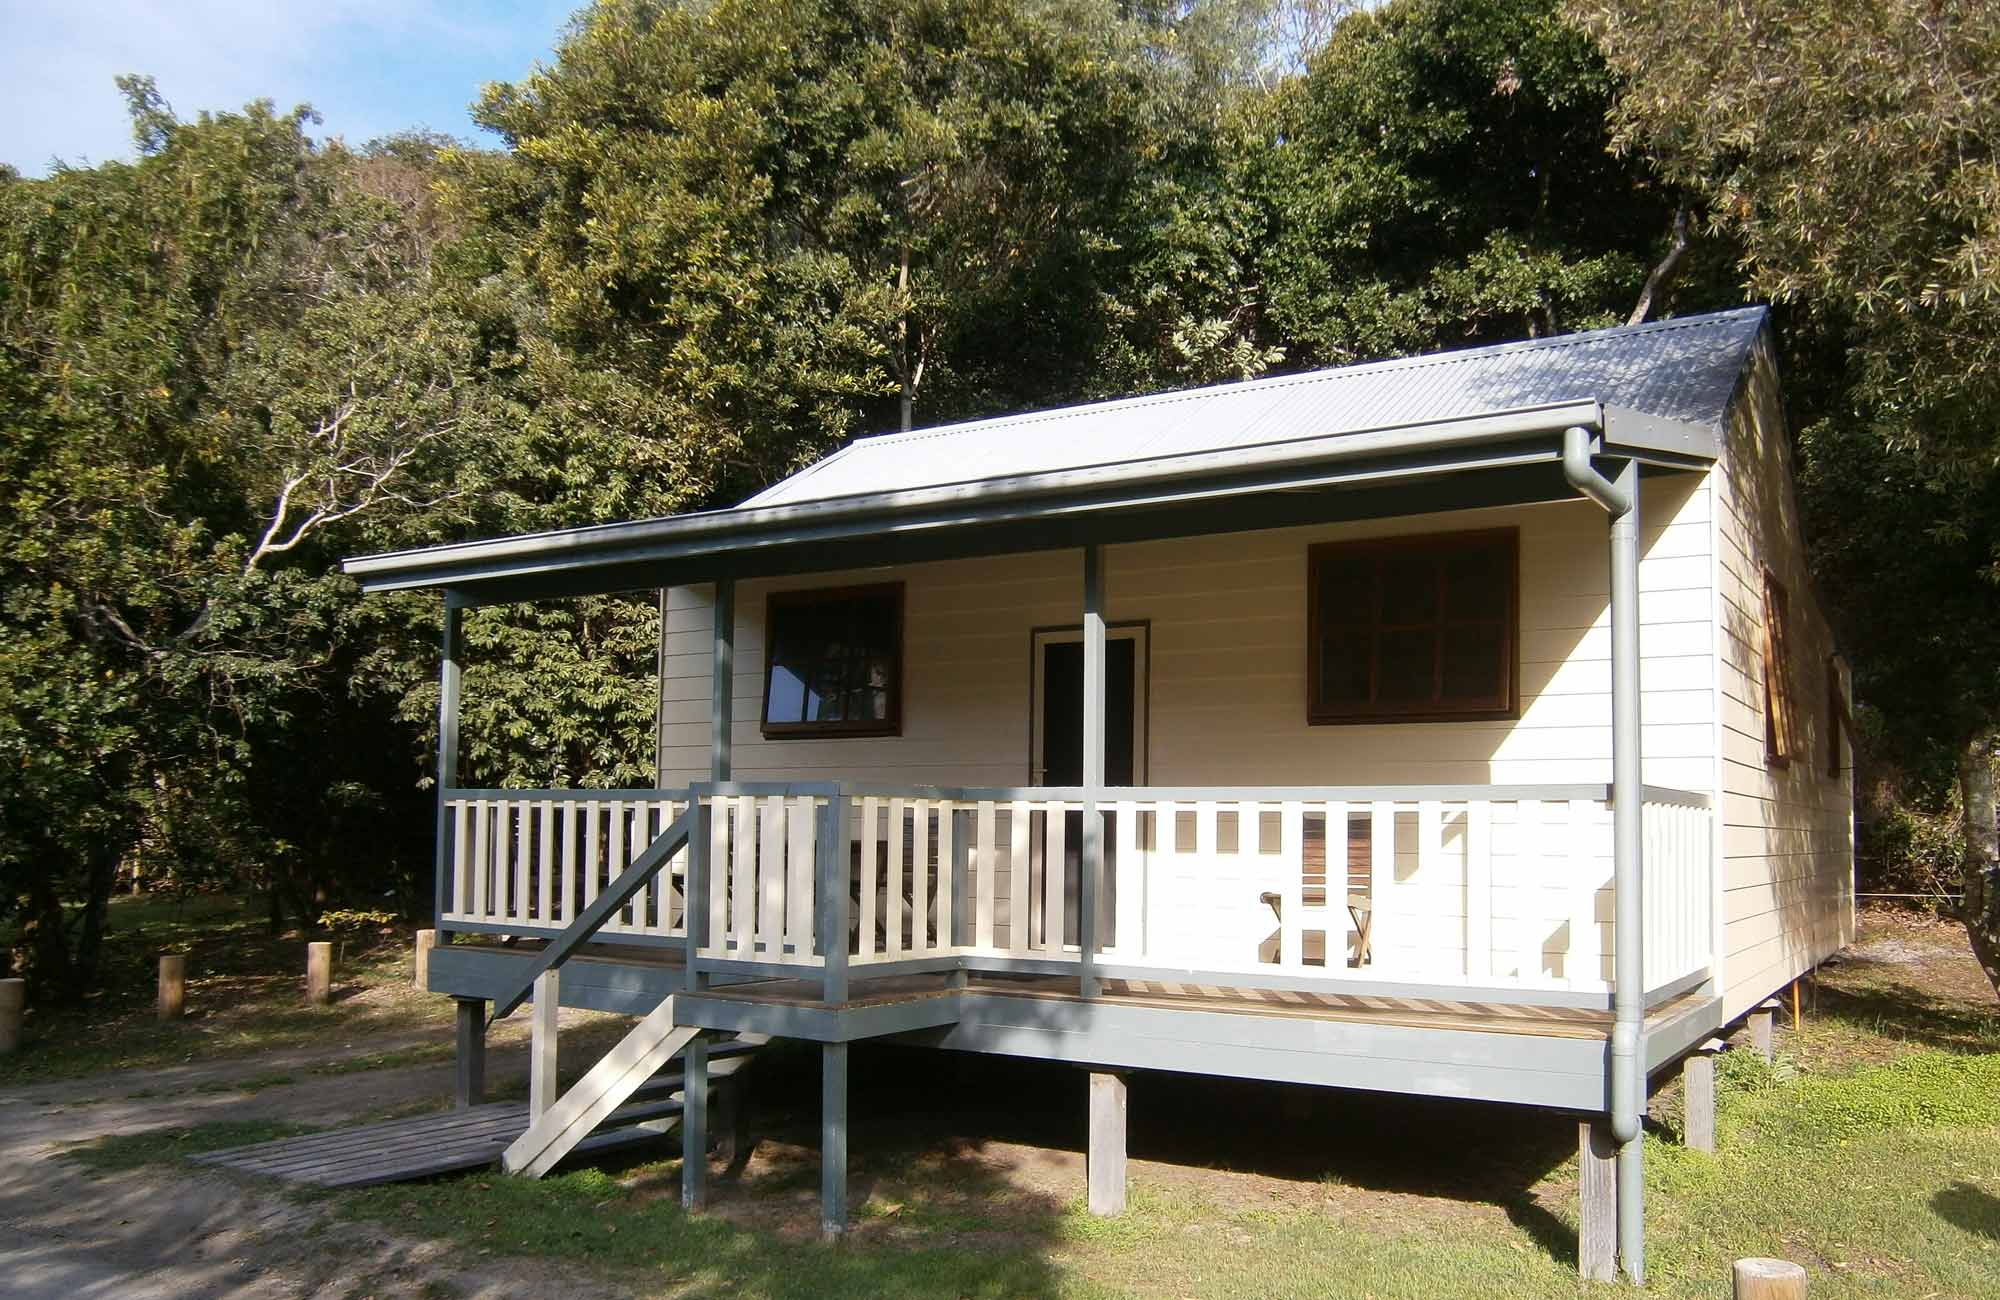 Cabin 4, Woody Head Cottages and Cabins, Bundjalung National Park. Photo: M Fletcher